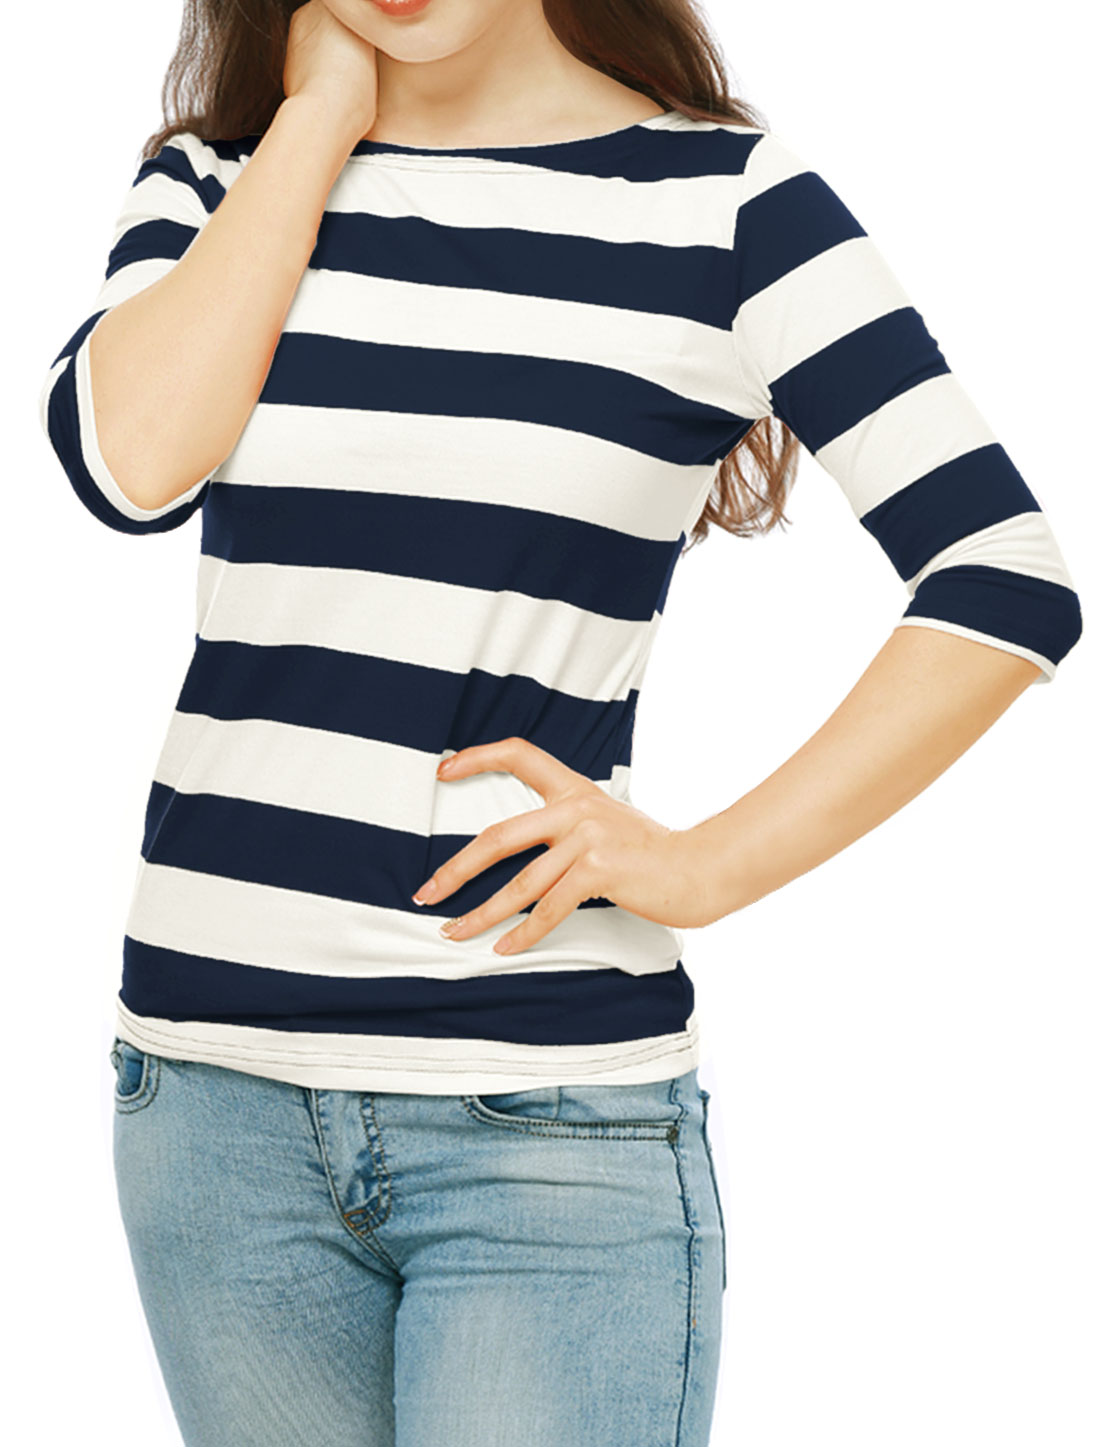 Allegra K Women Elbow Sleeves Rugby Stripes Casual Tee Blue XL